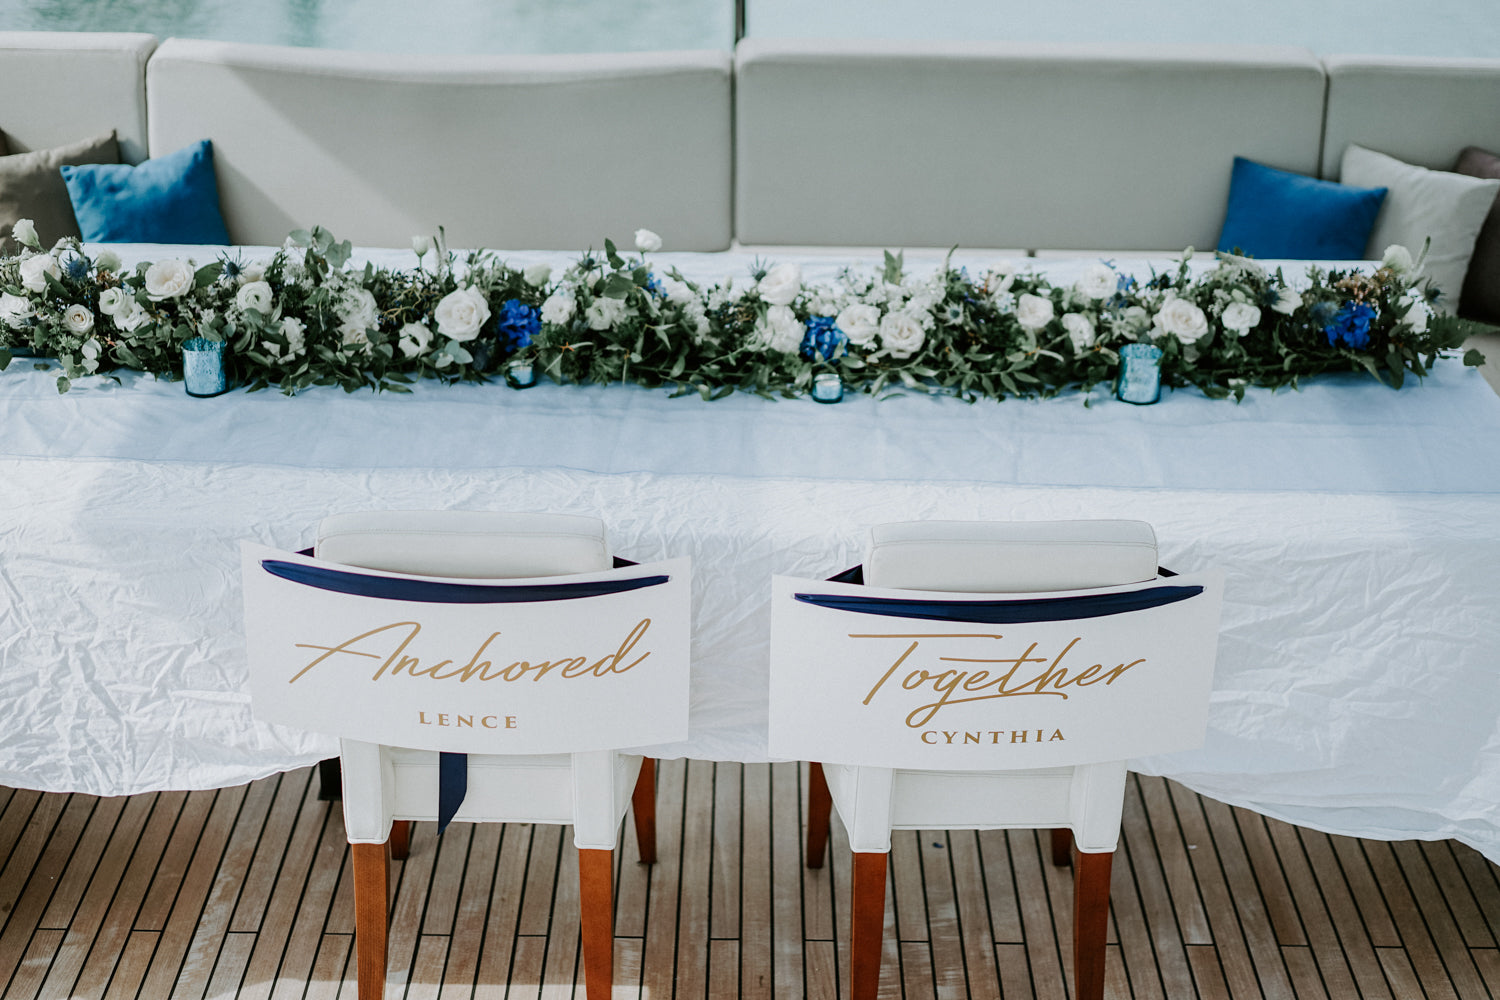 Chairs with Anchored Together text